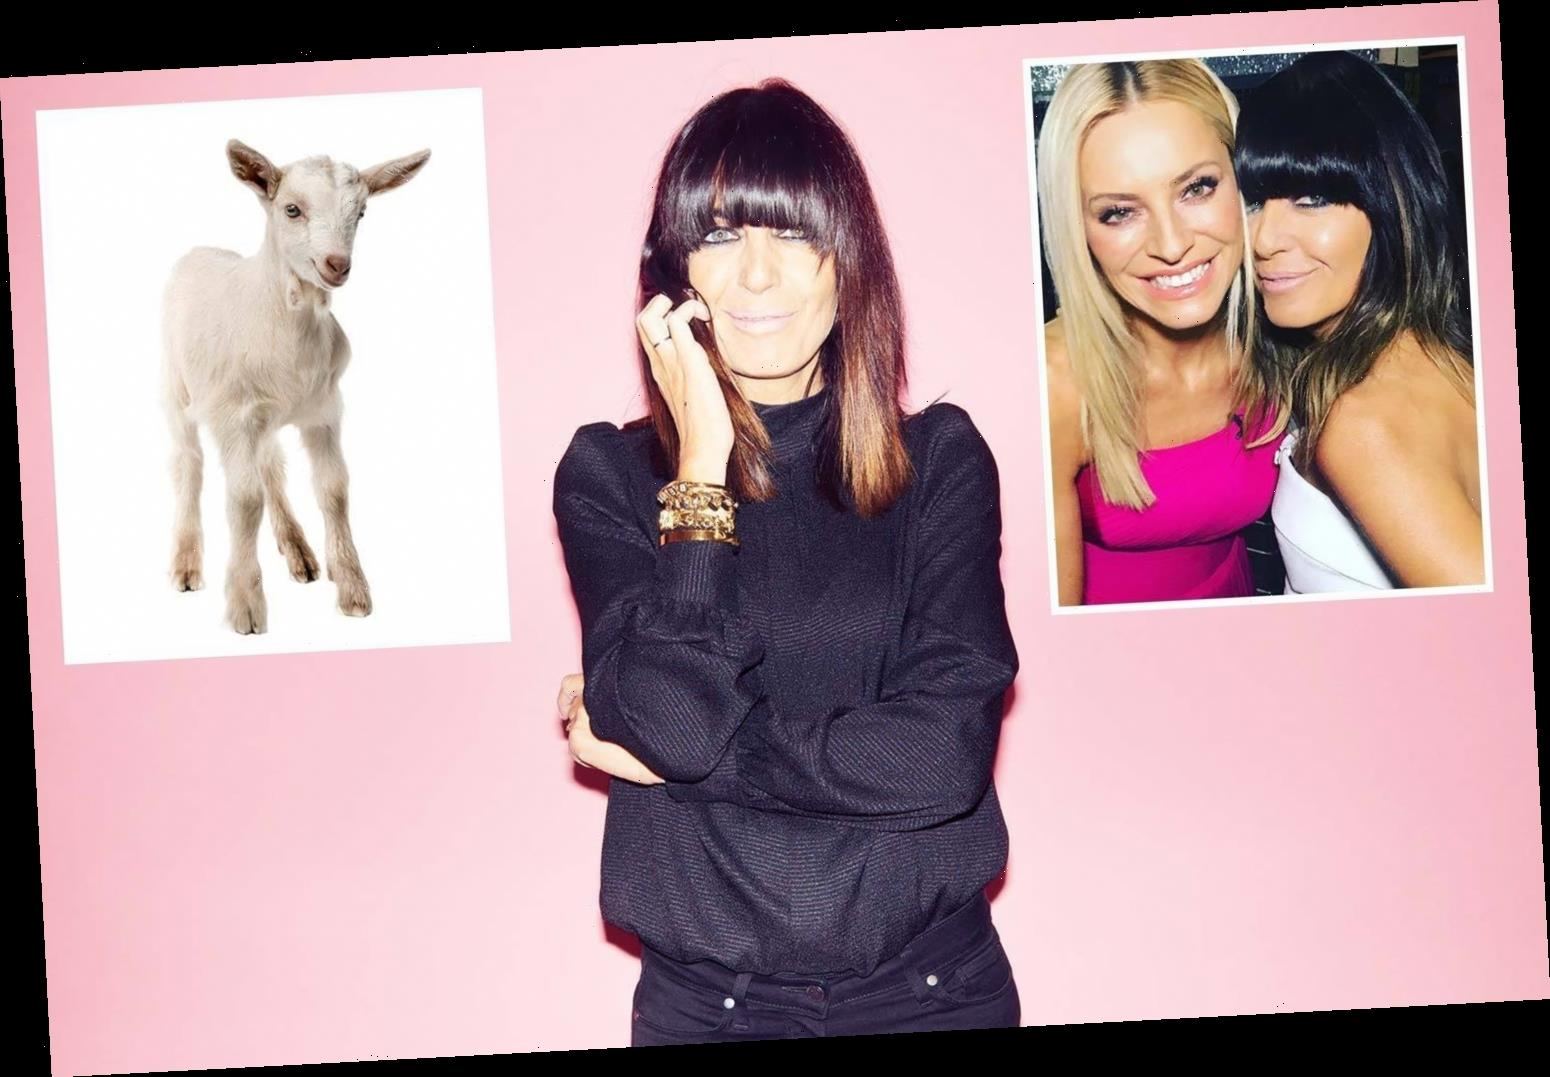 From baby goats to newspapers, the little things that bring me big happiness, says Claudia Winkleman